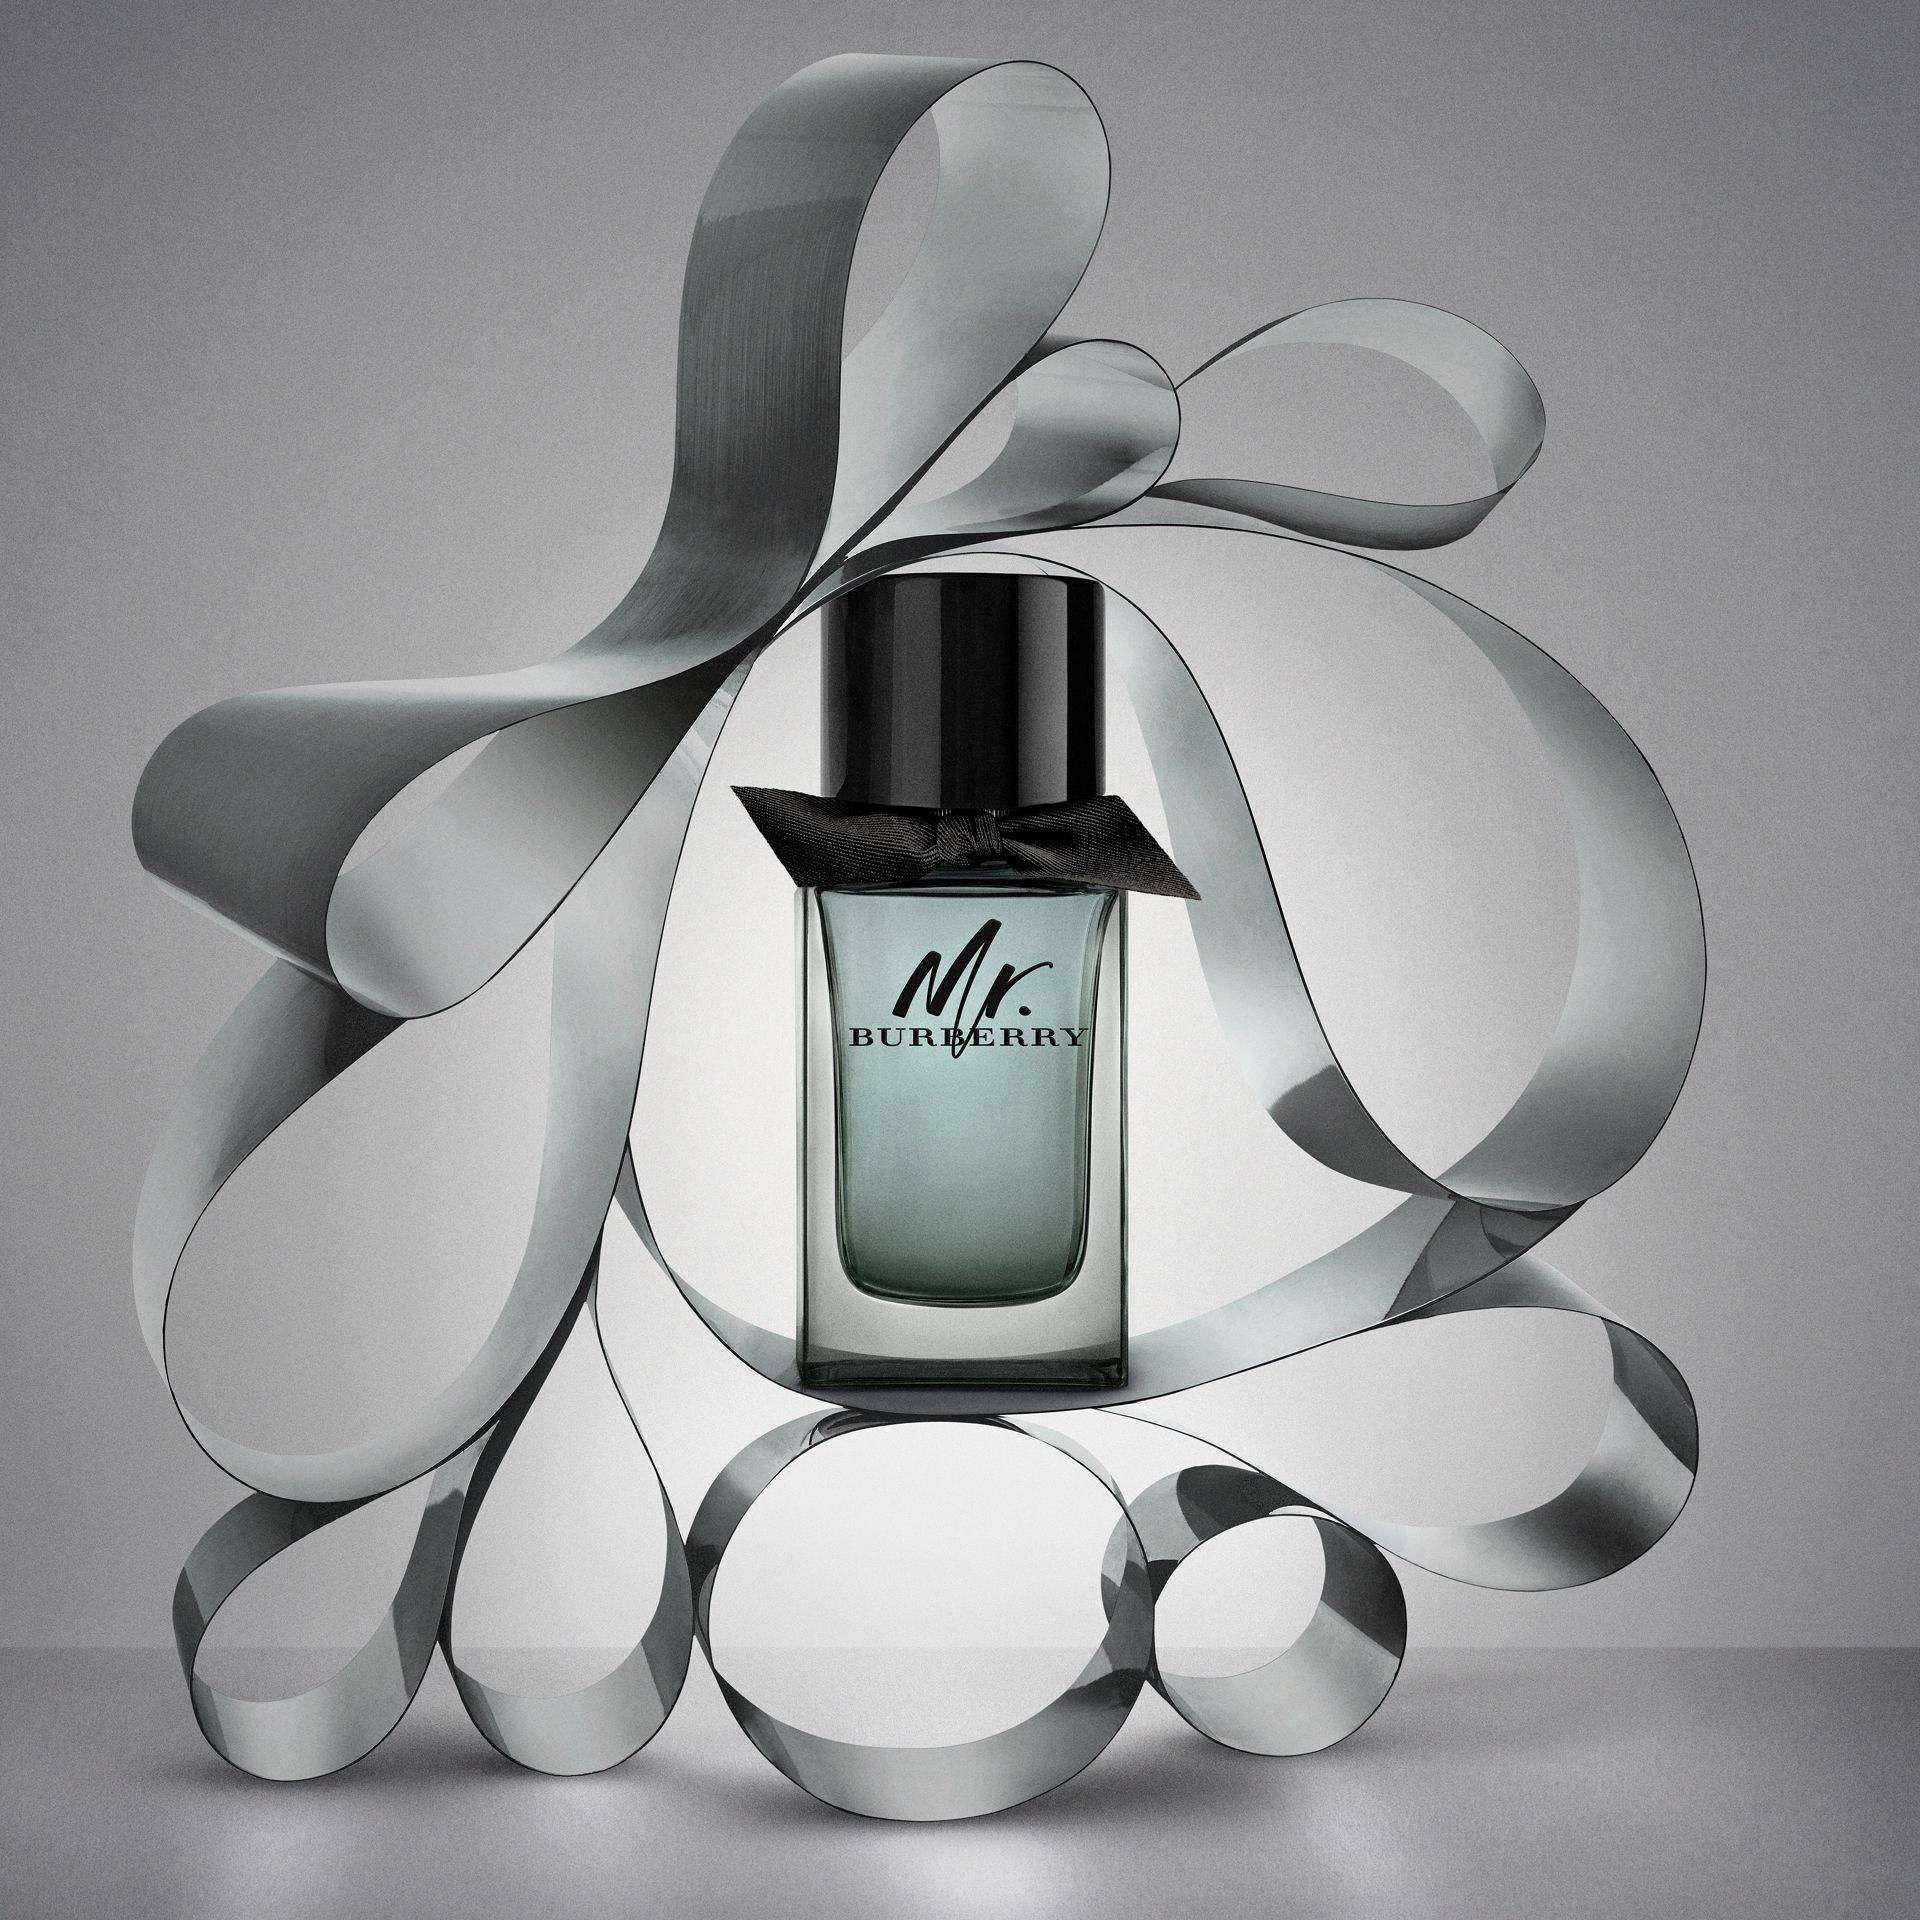 Mr. Burberry Eau de Toilette Luxury Set in No Colour - Men | Burberry - gallery image 1